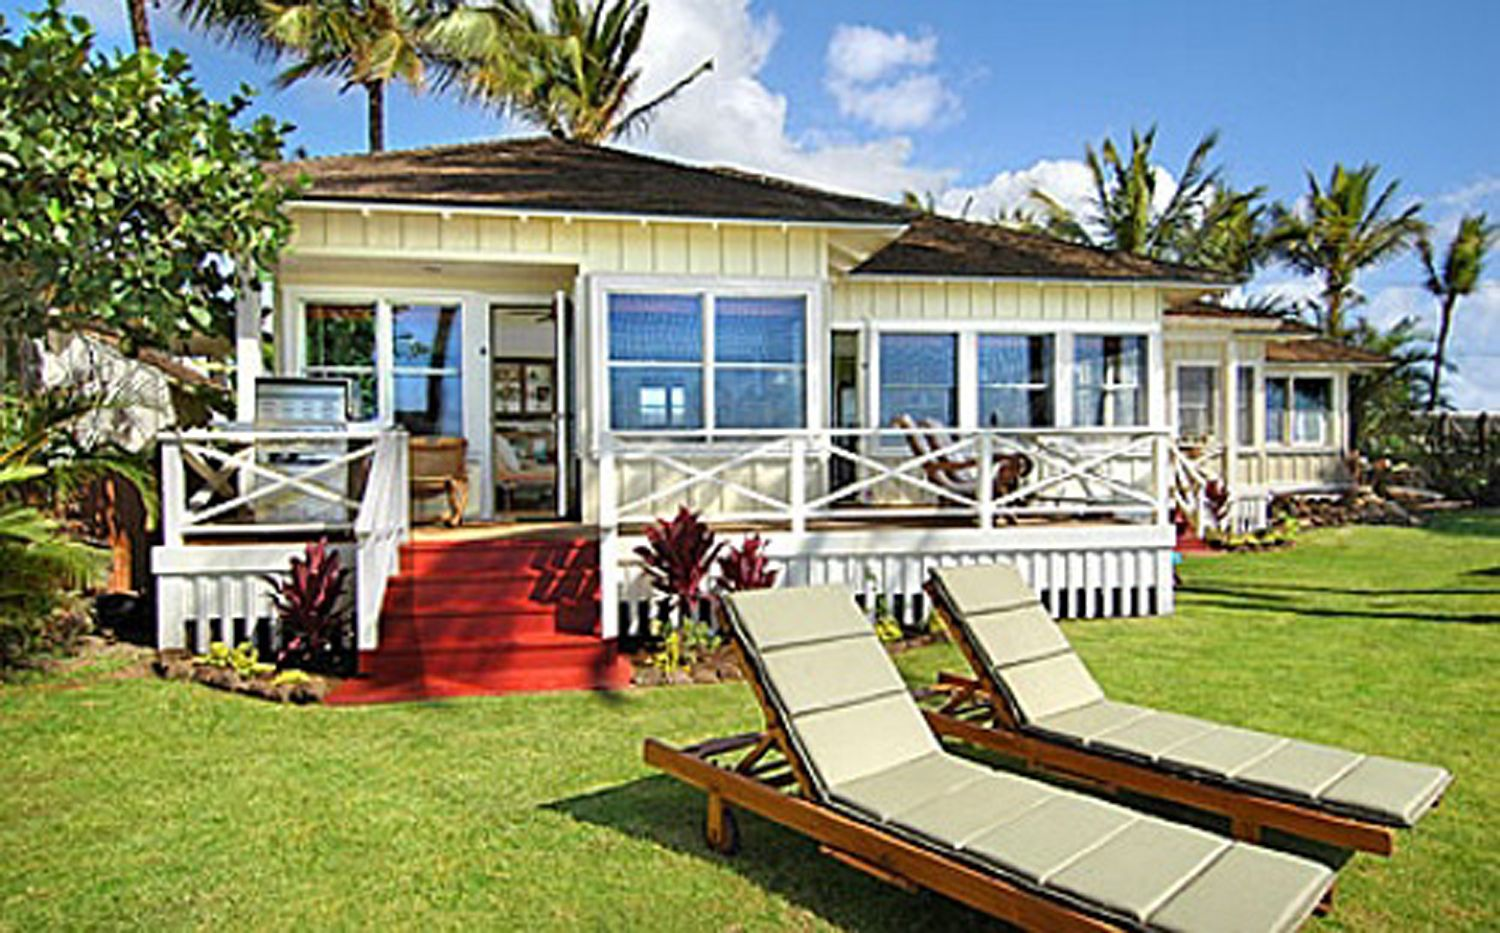 Coastline Cottages In Poipu In Kauai 12 From The Ocean This Is My Special Place Where I Go To Regr Kauai Vacation Rentals Kauai Vacation Oceanfront Rentals